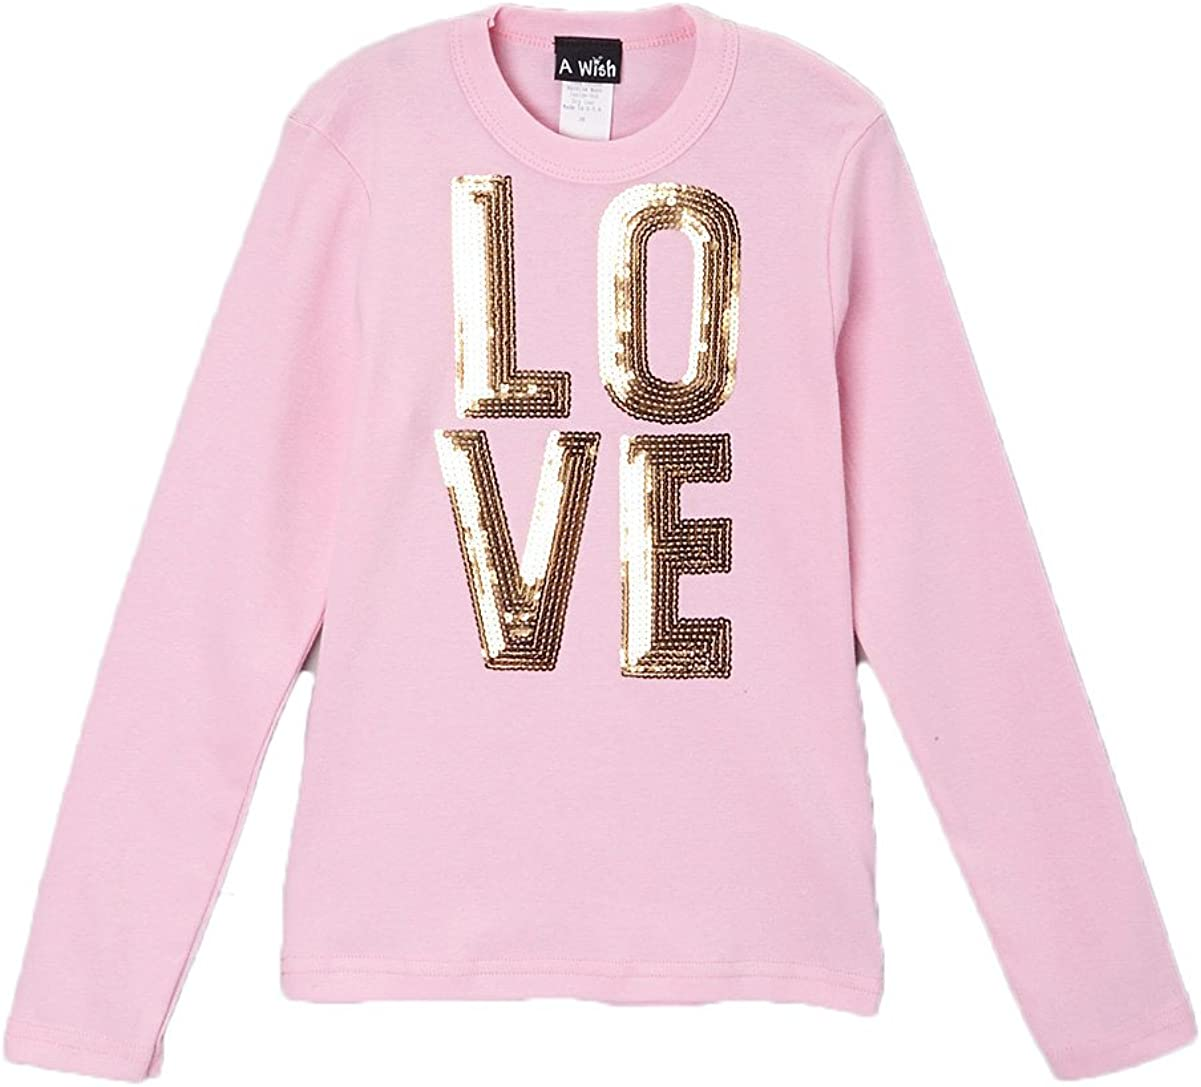 A Wish Pink Long Sleeve T With Gold Love Sequins